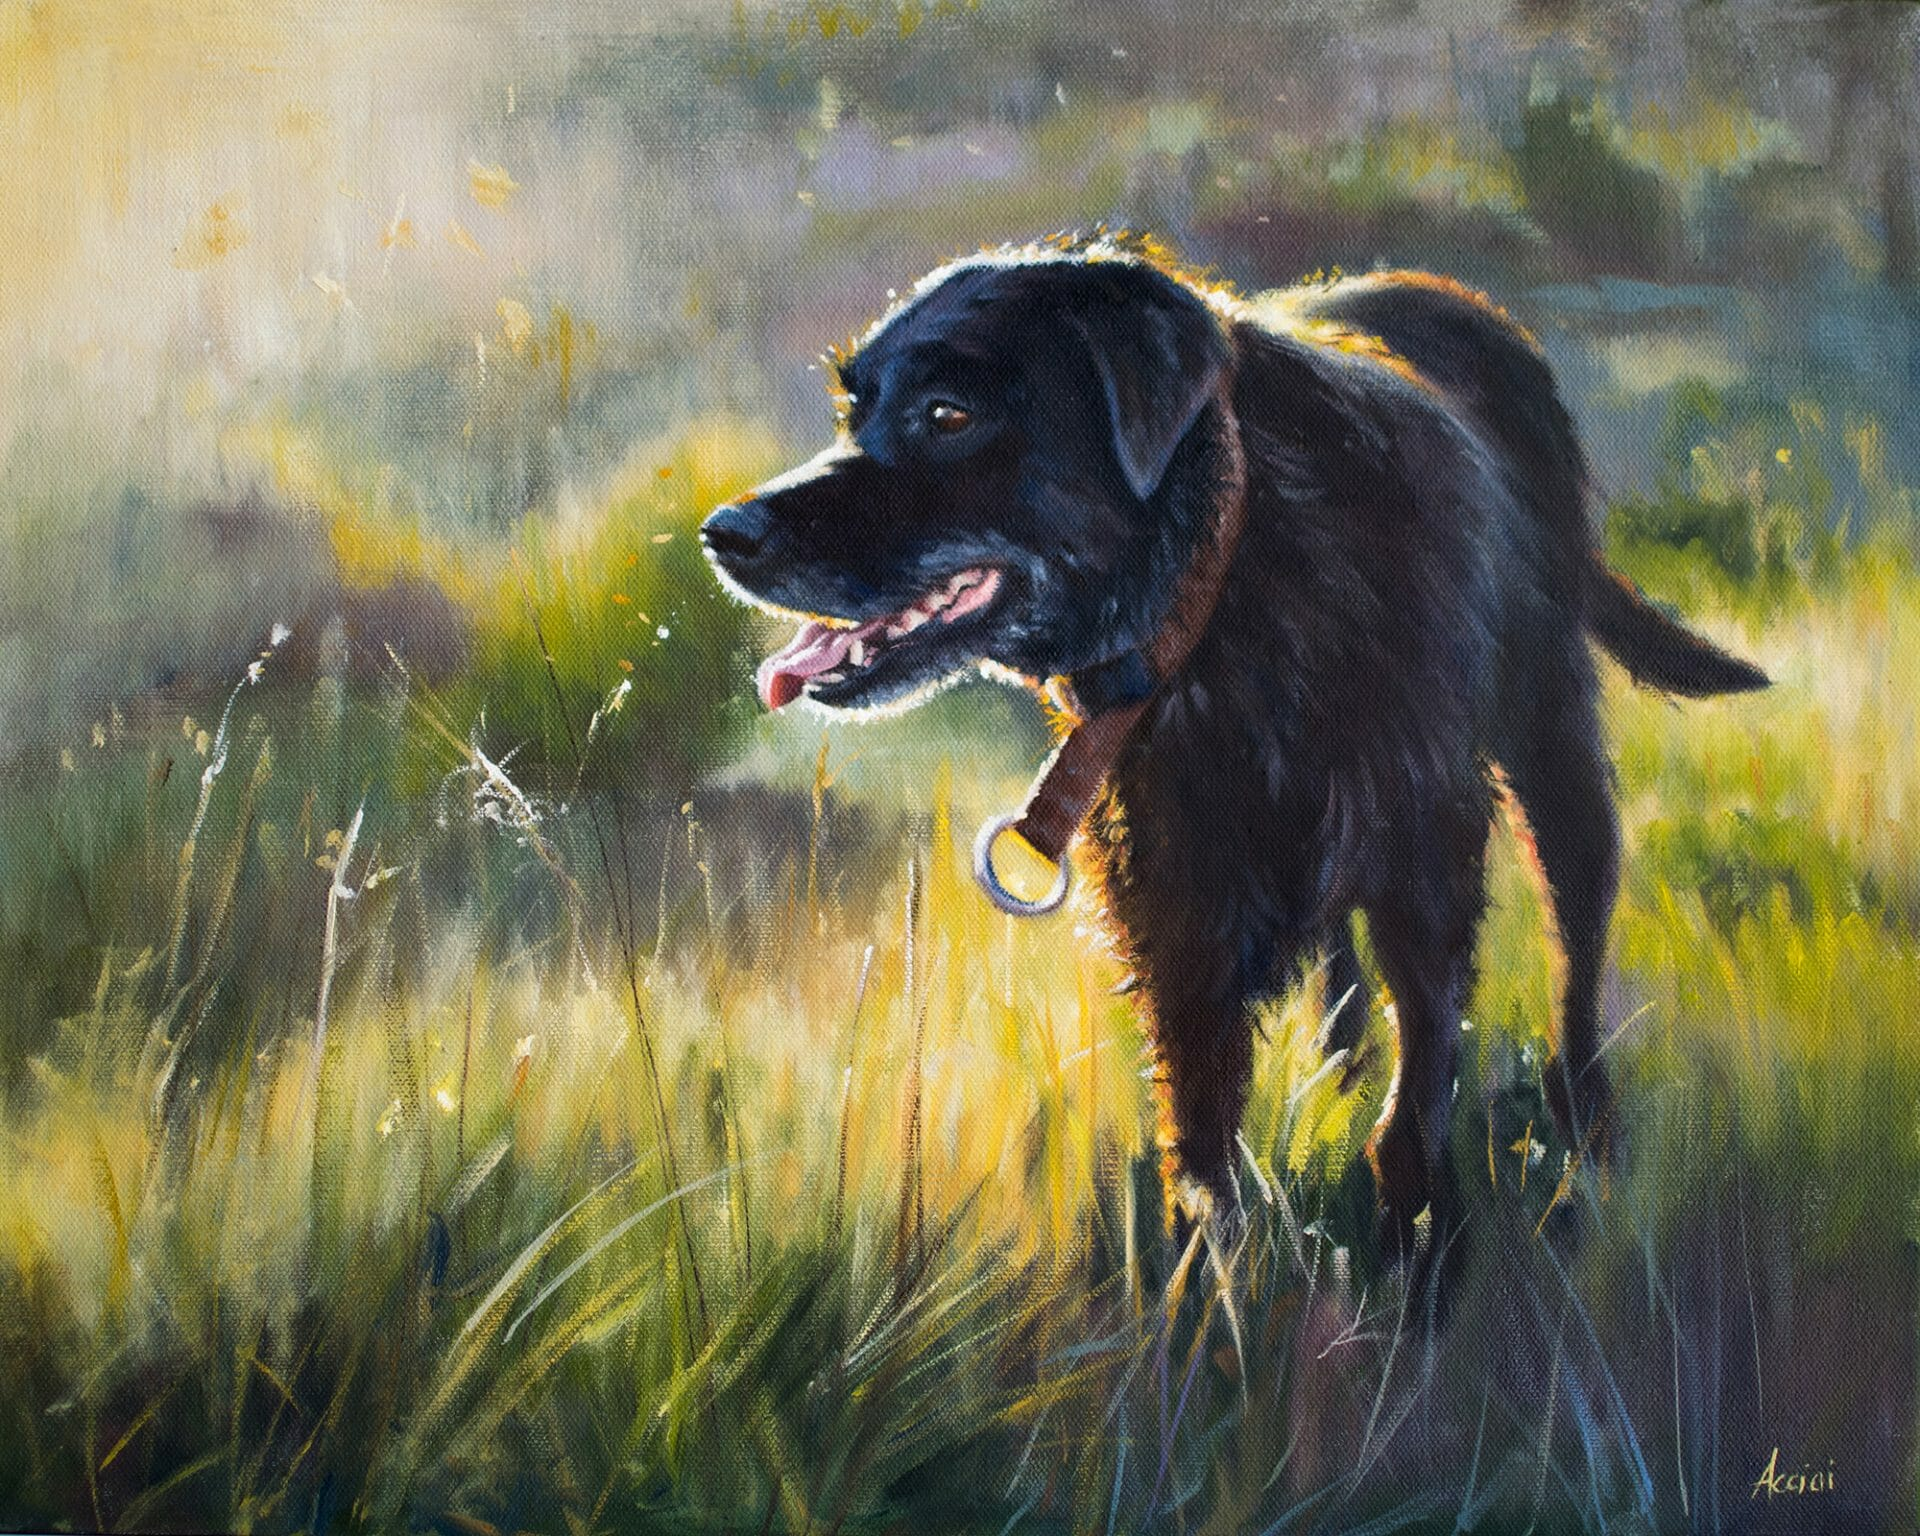 Golden Shimmer - oil painting - Lisa Acciai